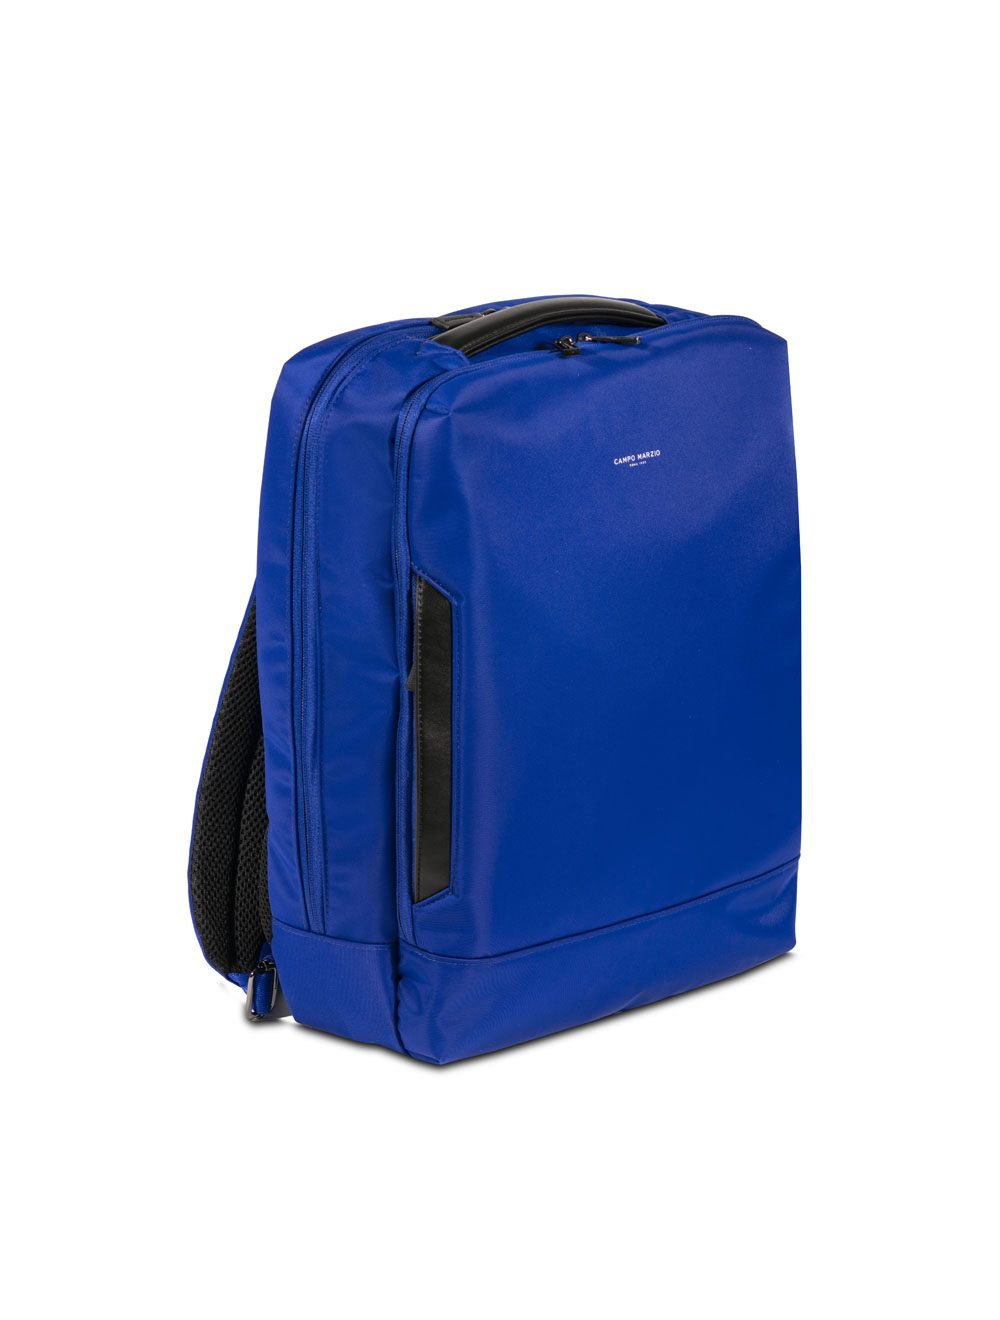 "Convertible Backpack 15"" - Blueberry"